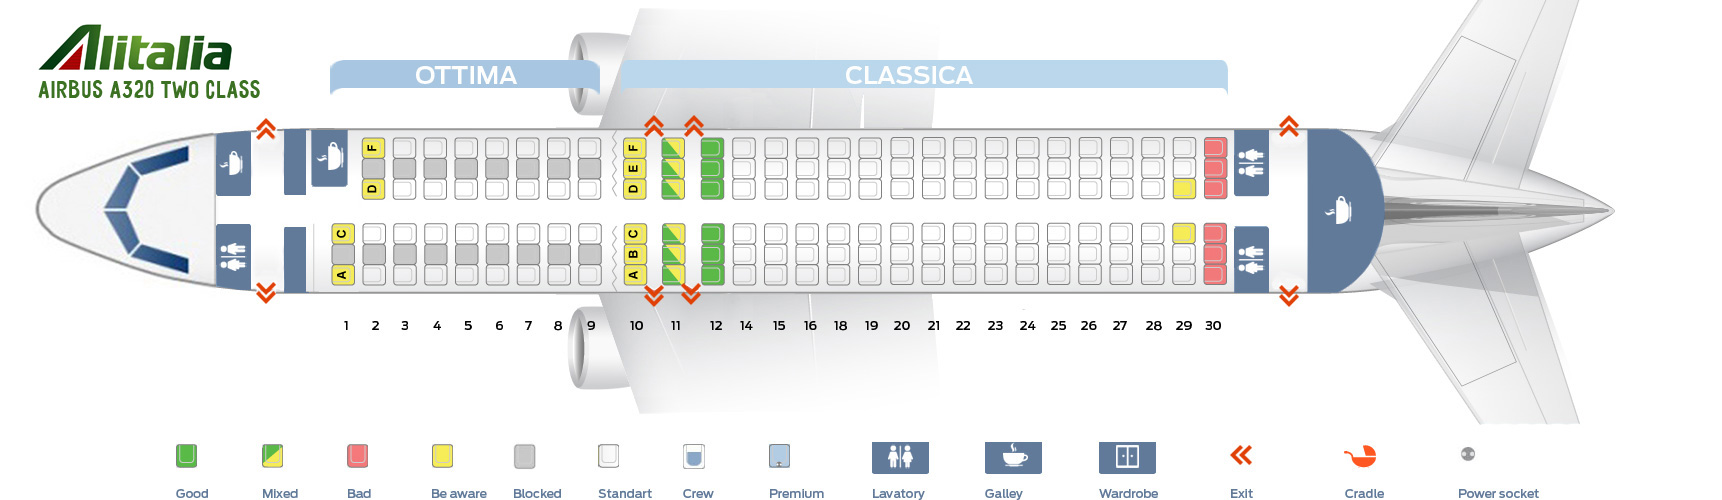 Seat Map Airbus A320 Two Class Alitalia Airlines